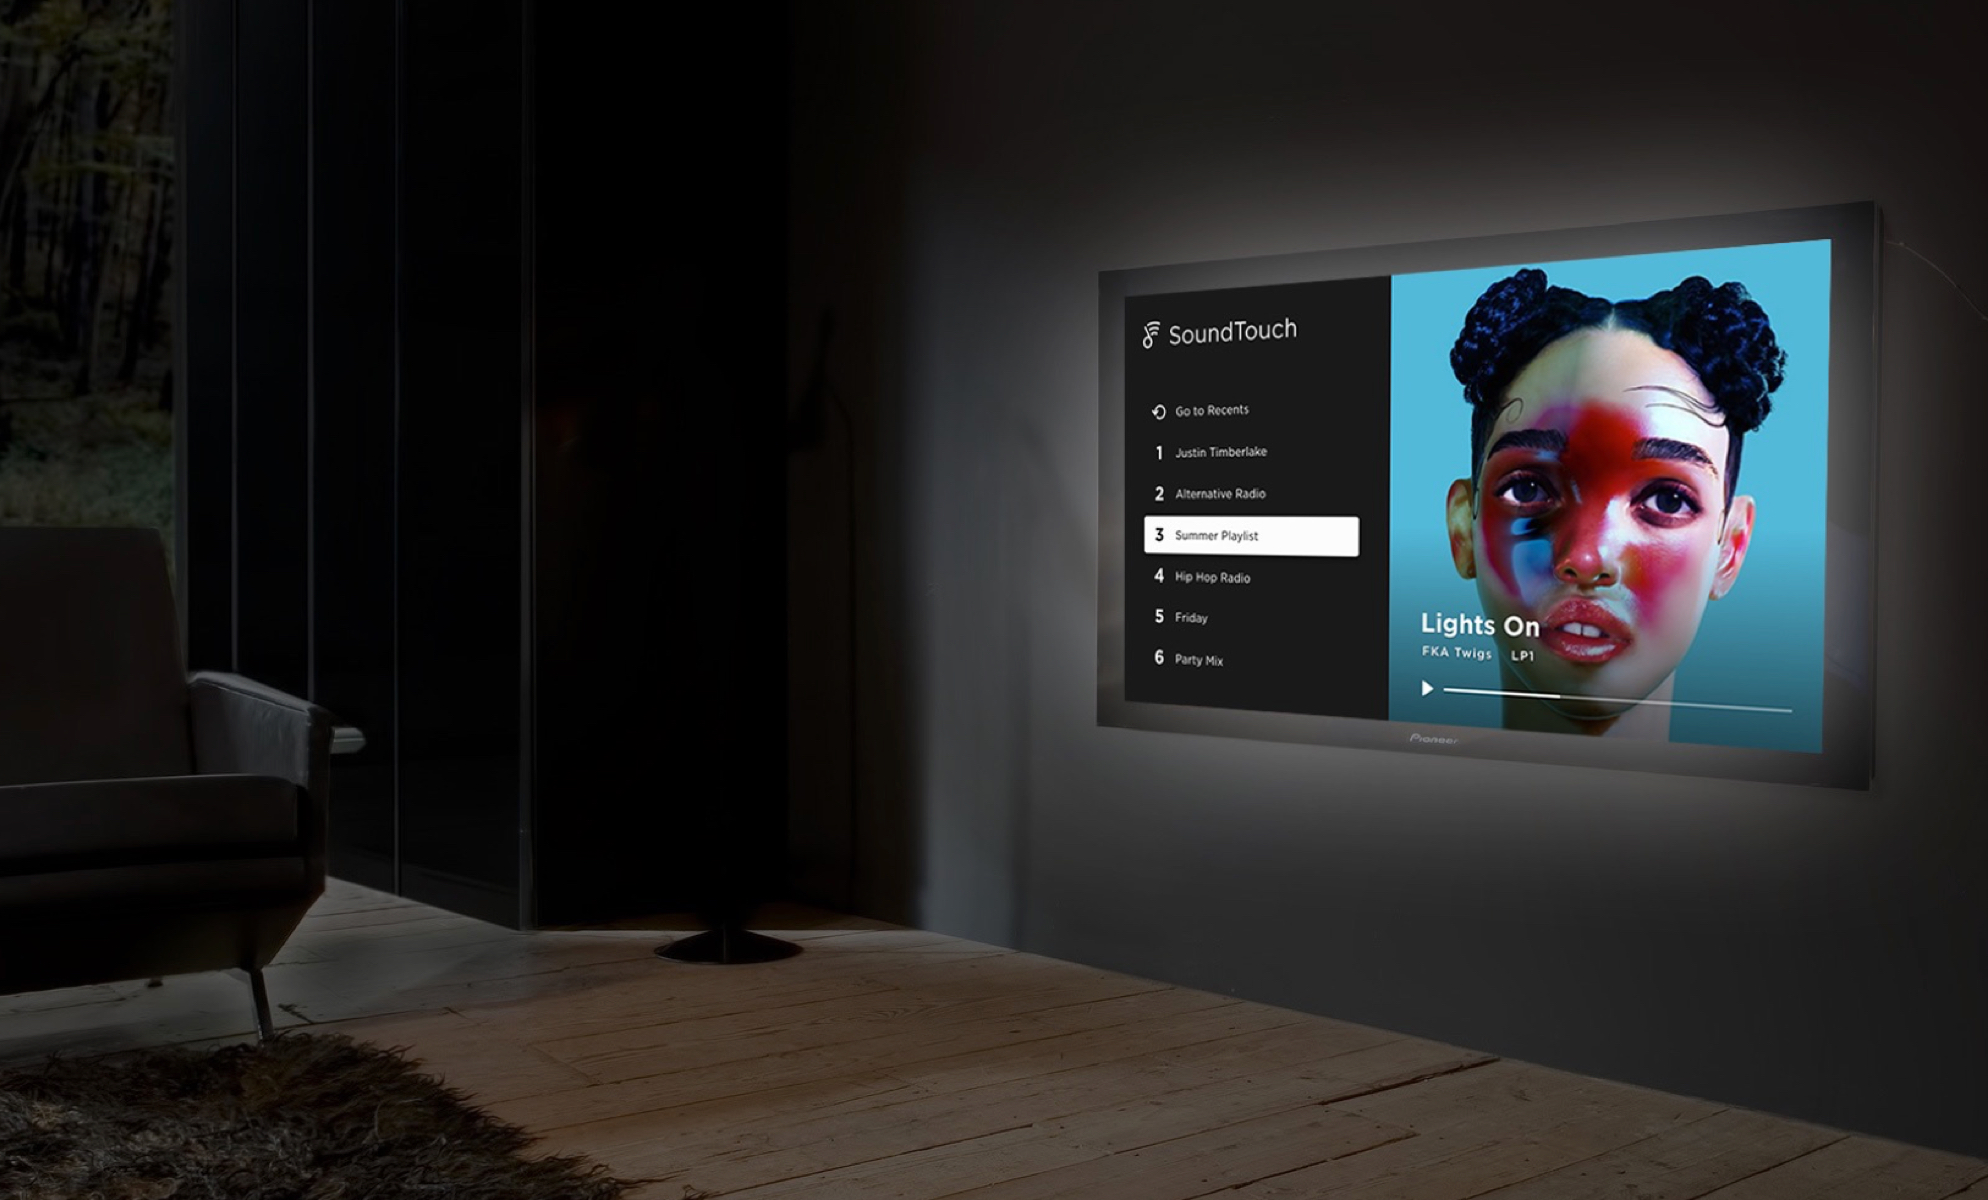 Bose's audio for video experience